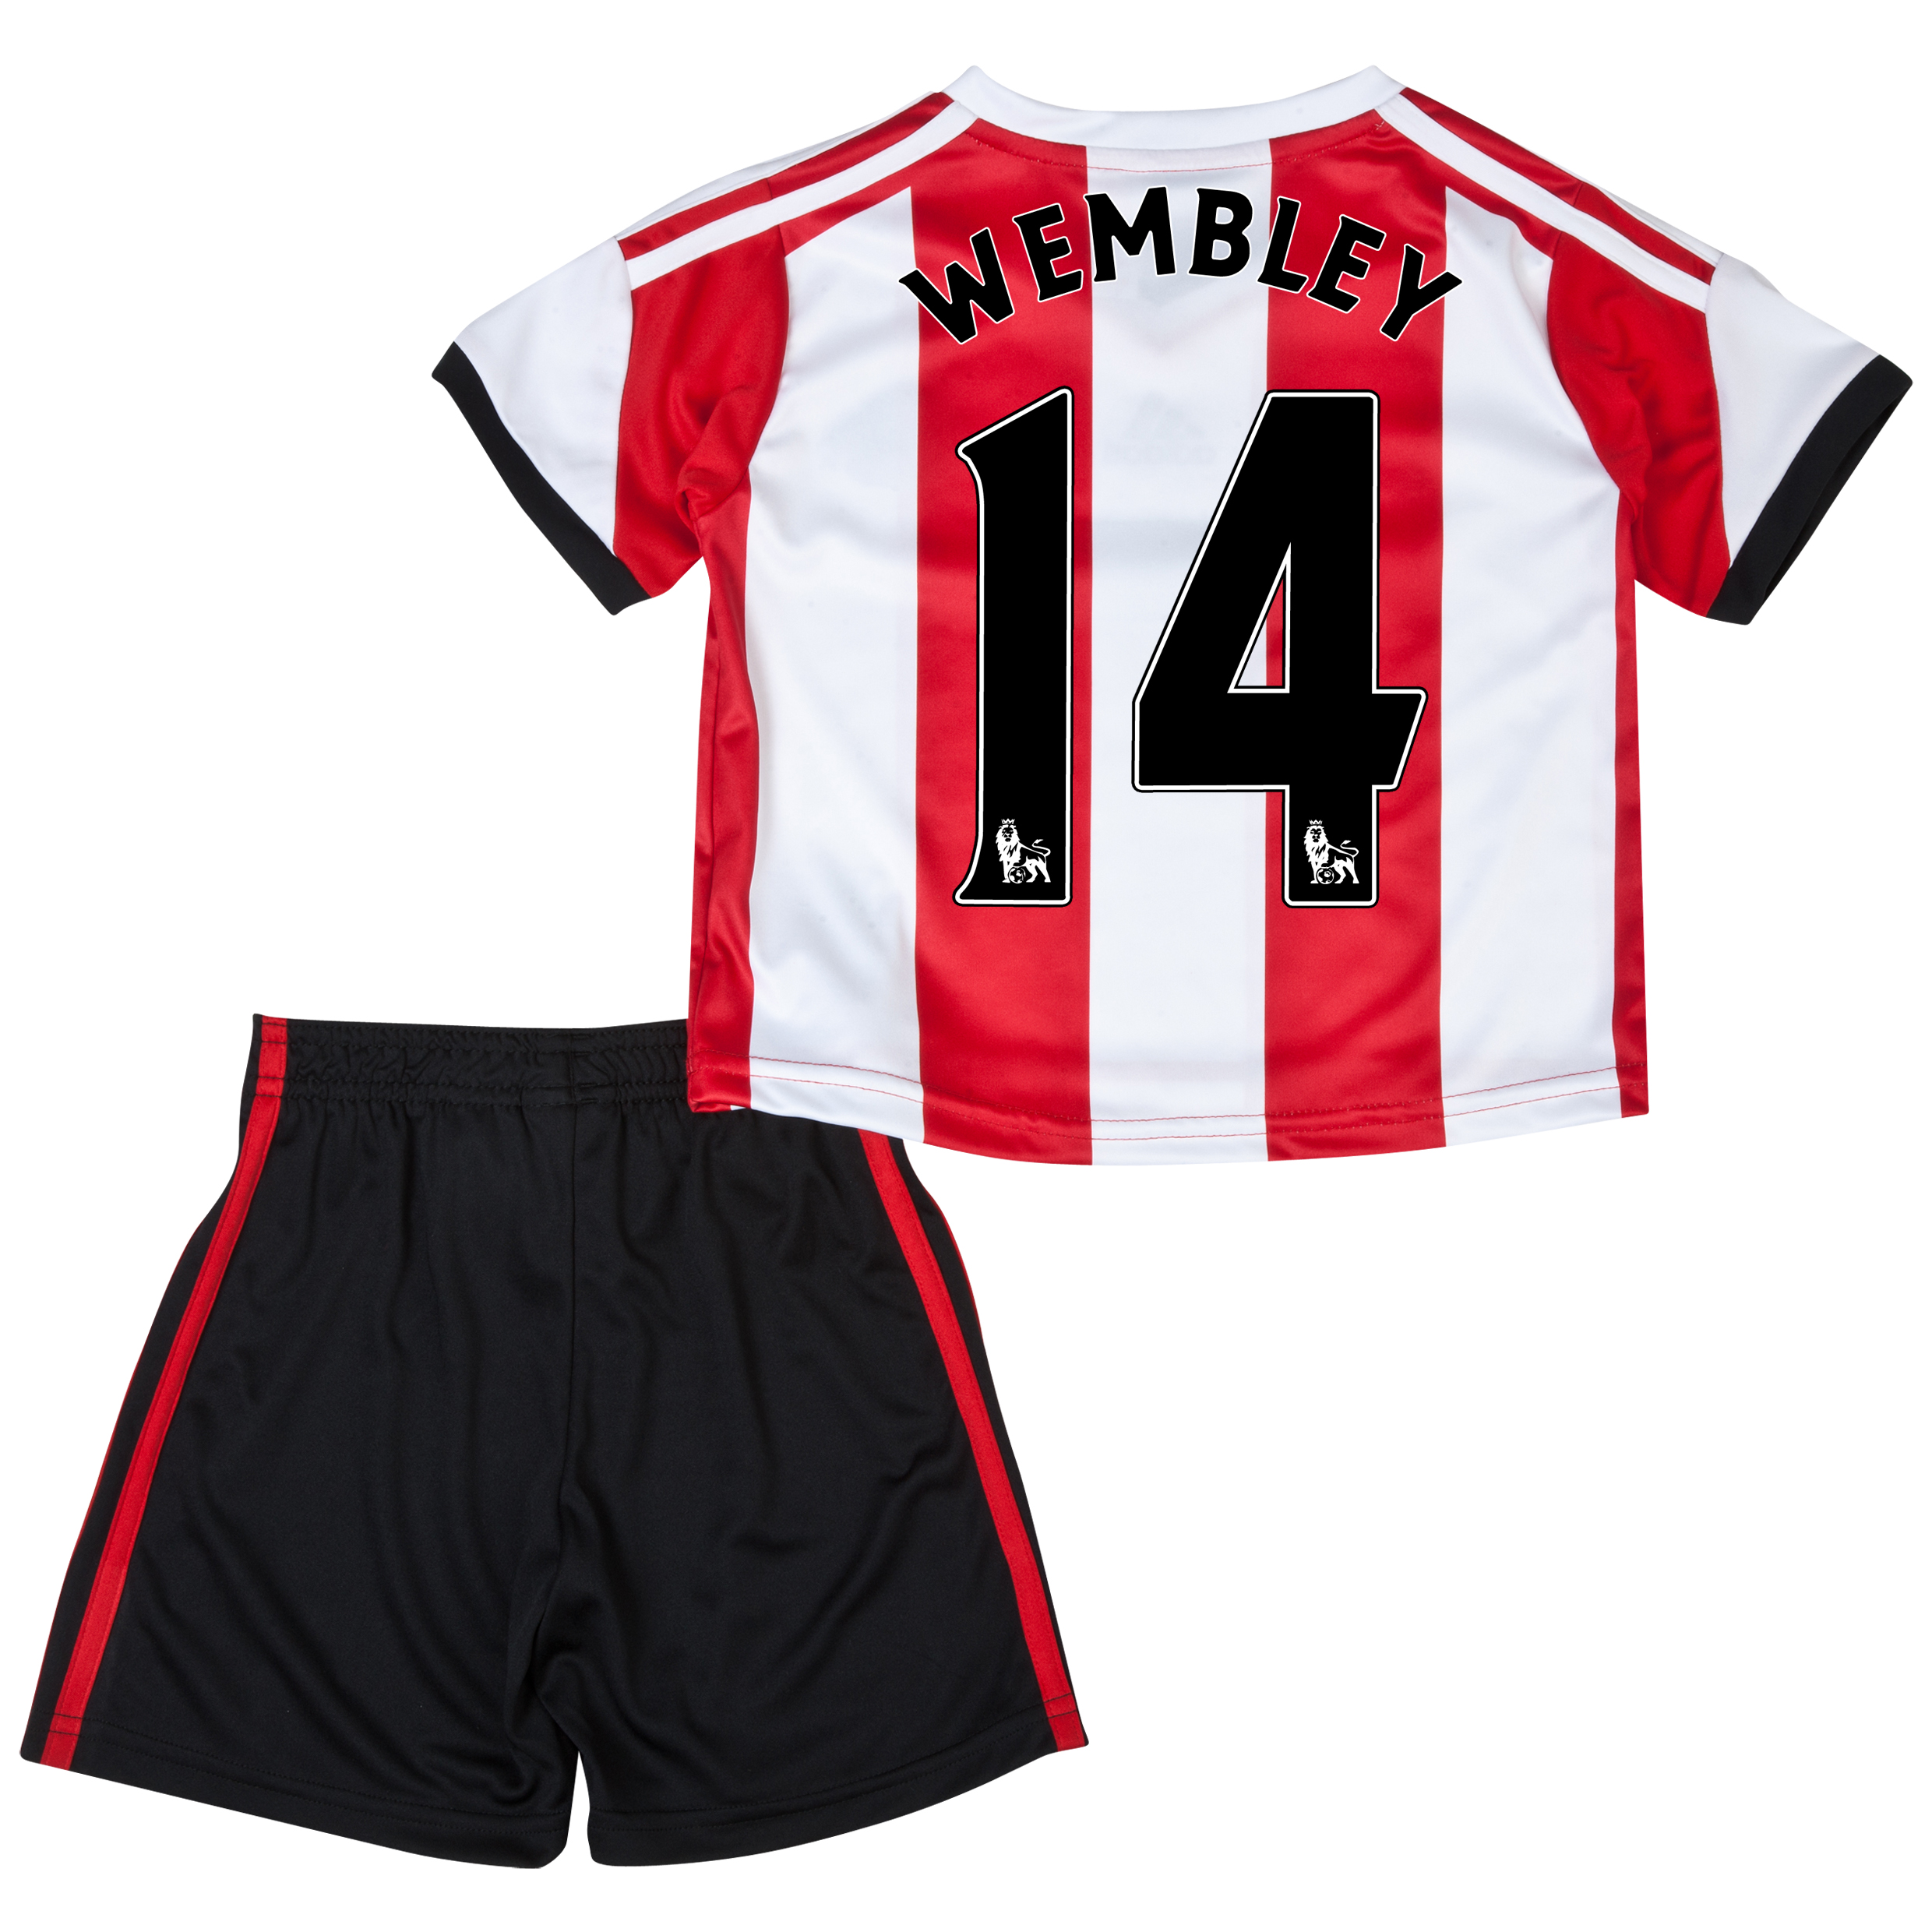 Sunderland Home Minikit 2013/14 - Infants with Wembley 14 printing